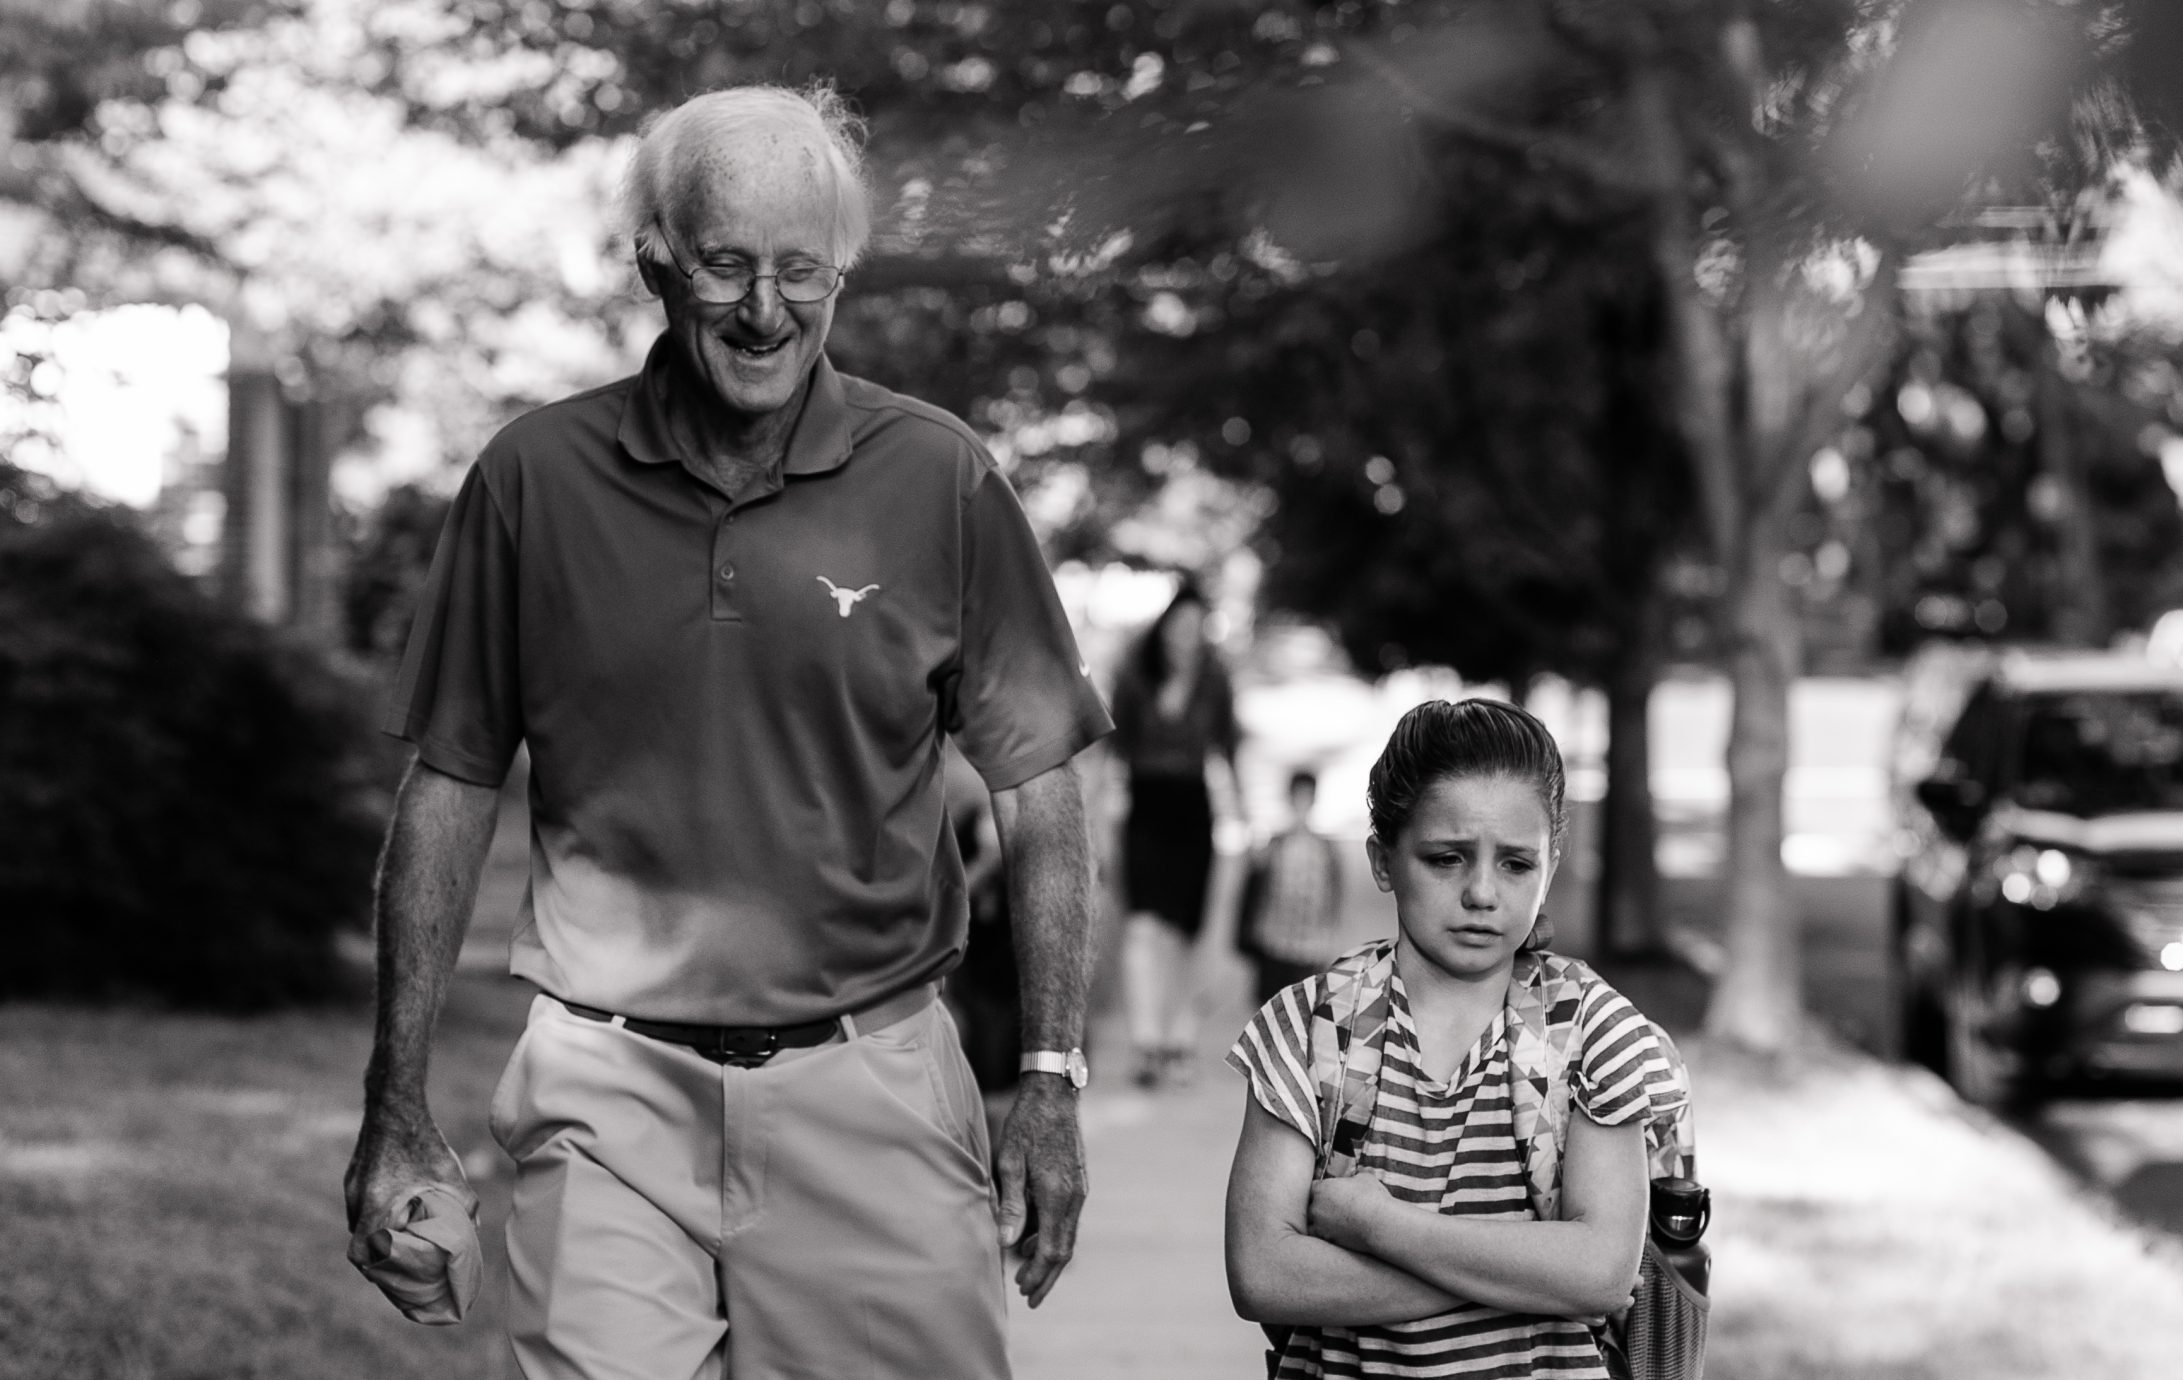 Daughter of DC widow blog writer Marjorie Brimley crosses arms and frowns while Grandfather smiles at her